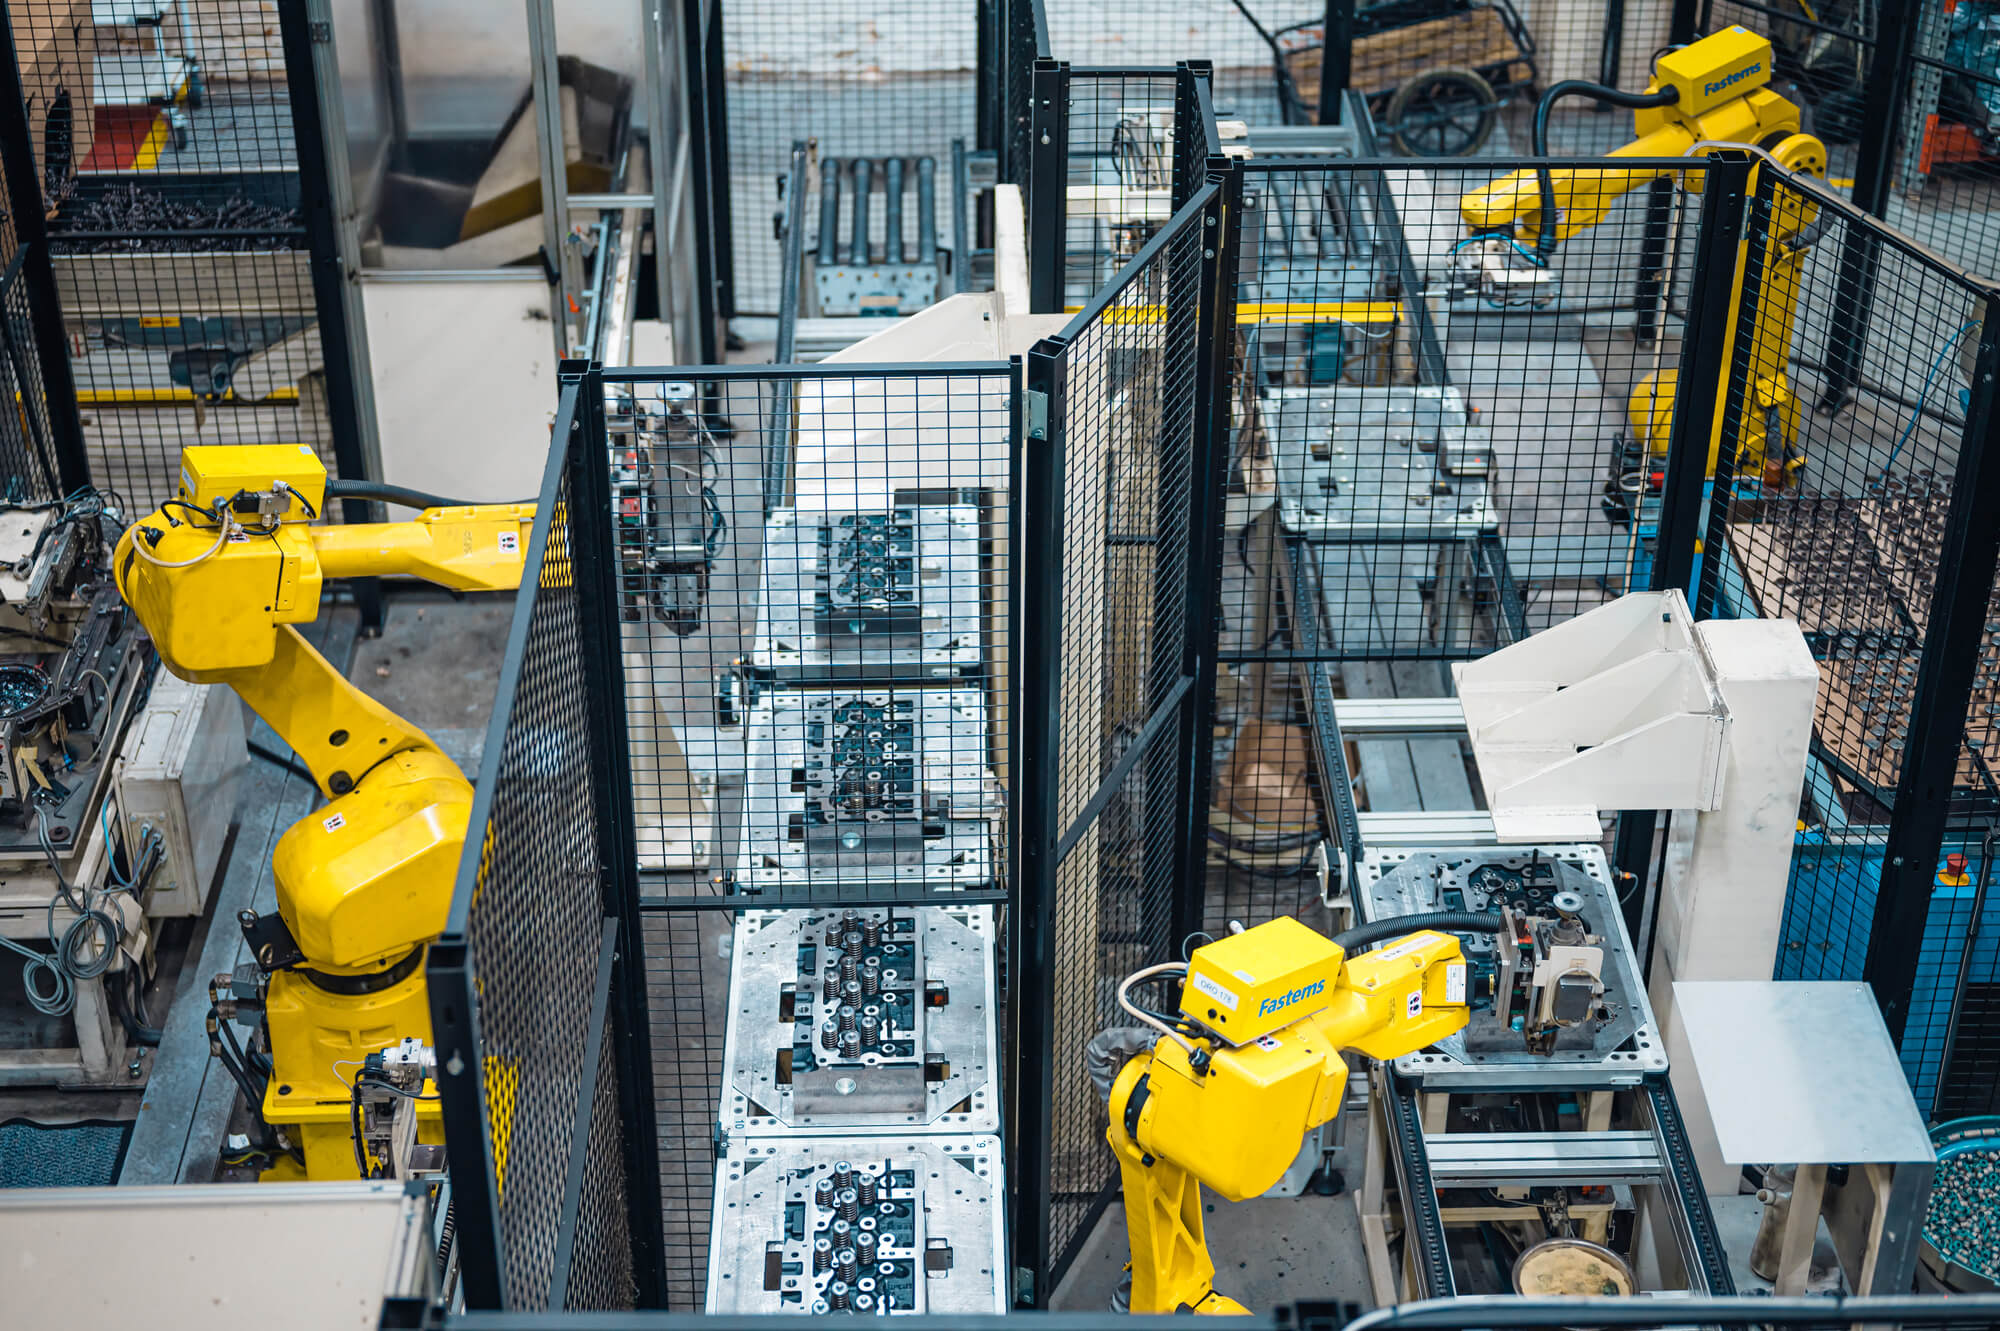 AGCO factory with Fastems robots working at a production line